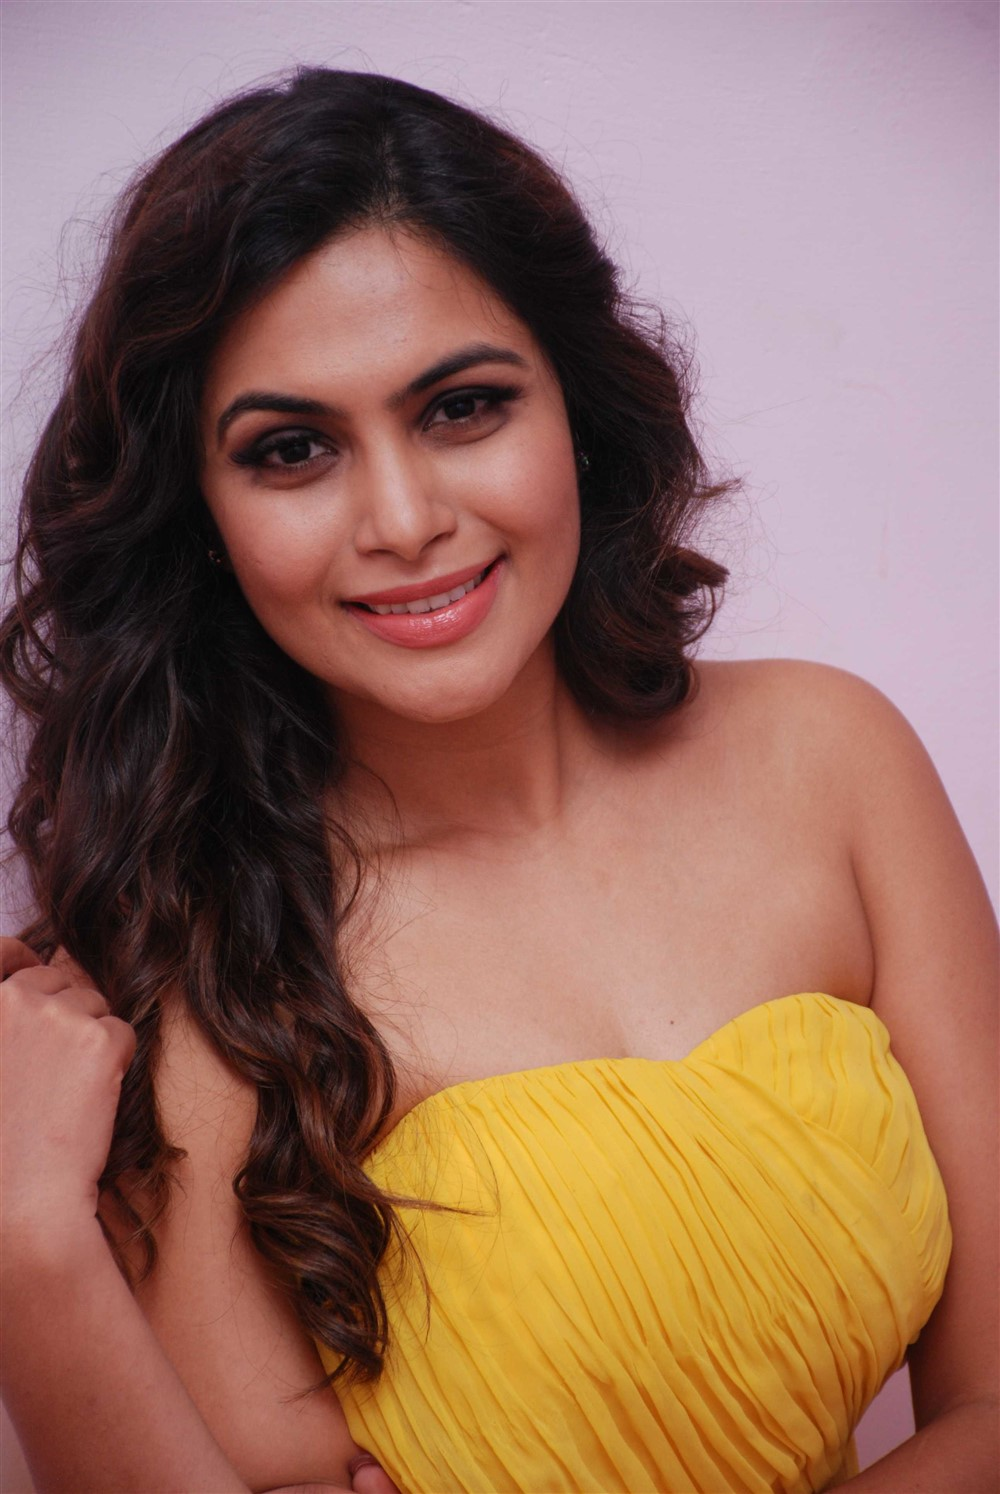 actress-sonu-gowda-hot-in-yellow-dress-1.